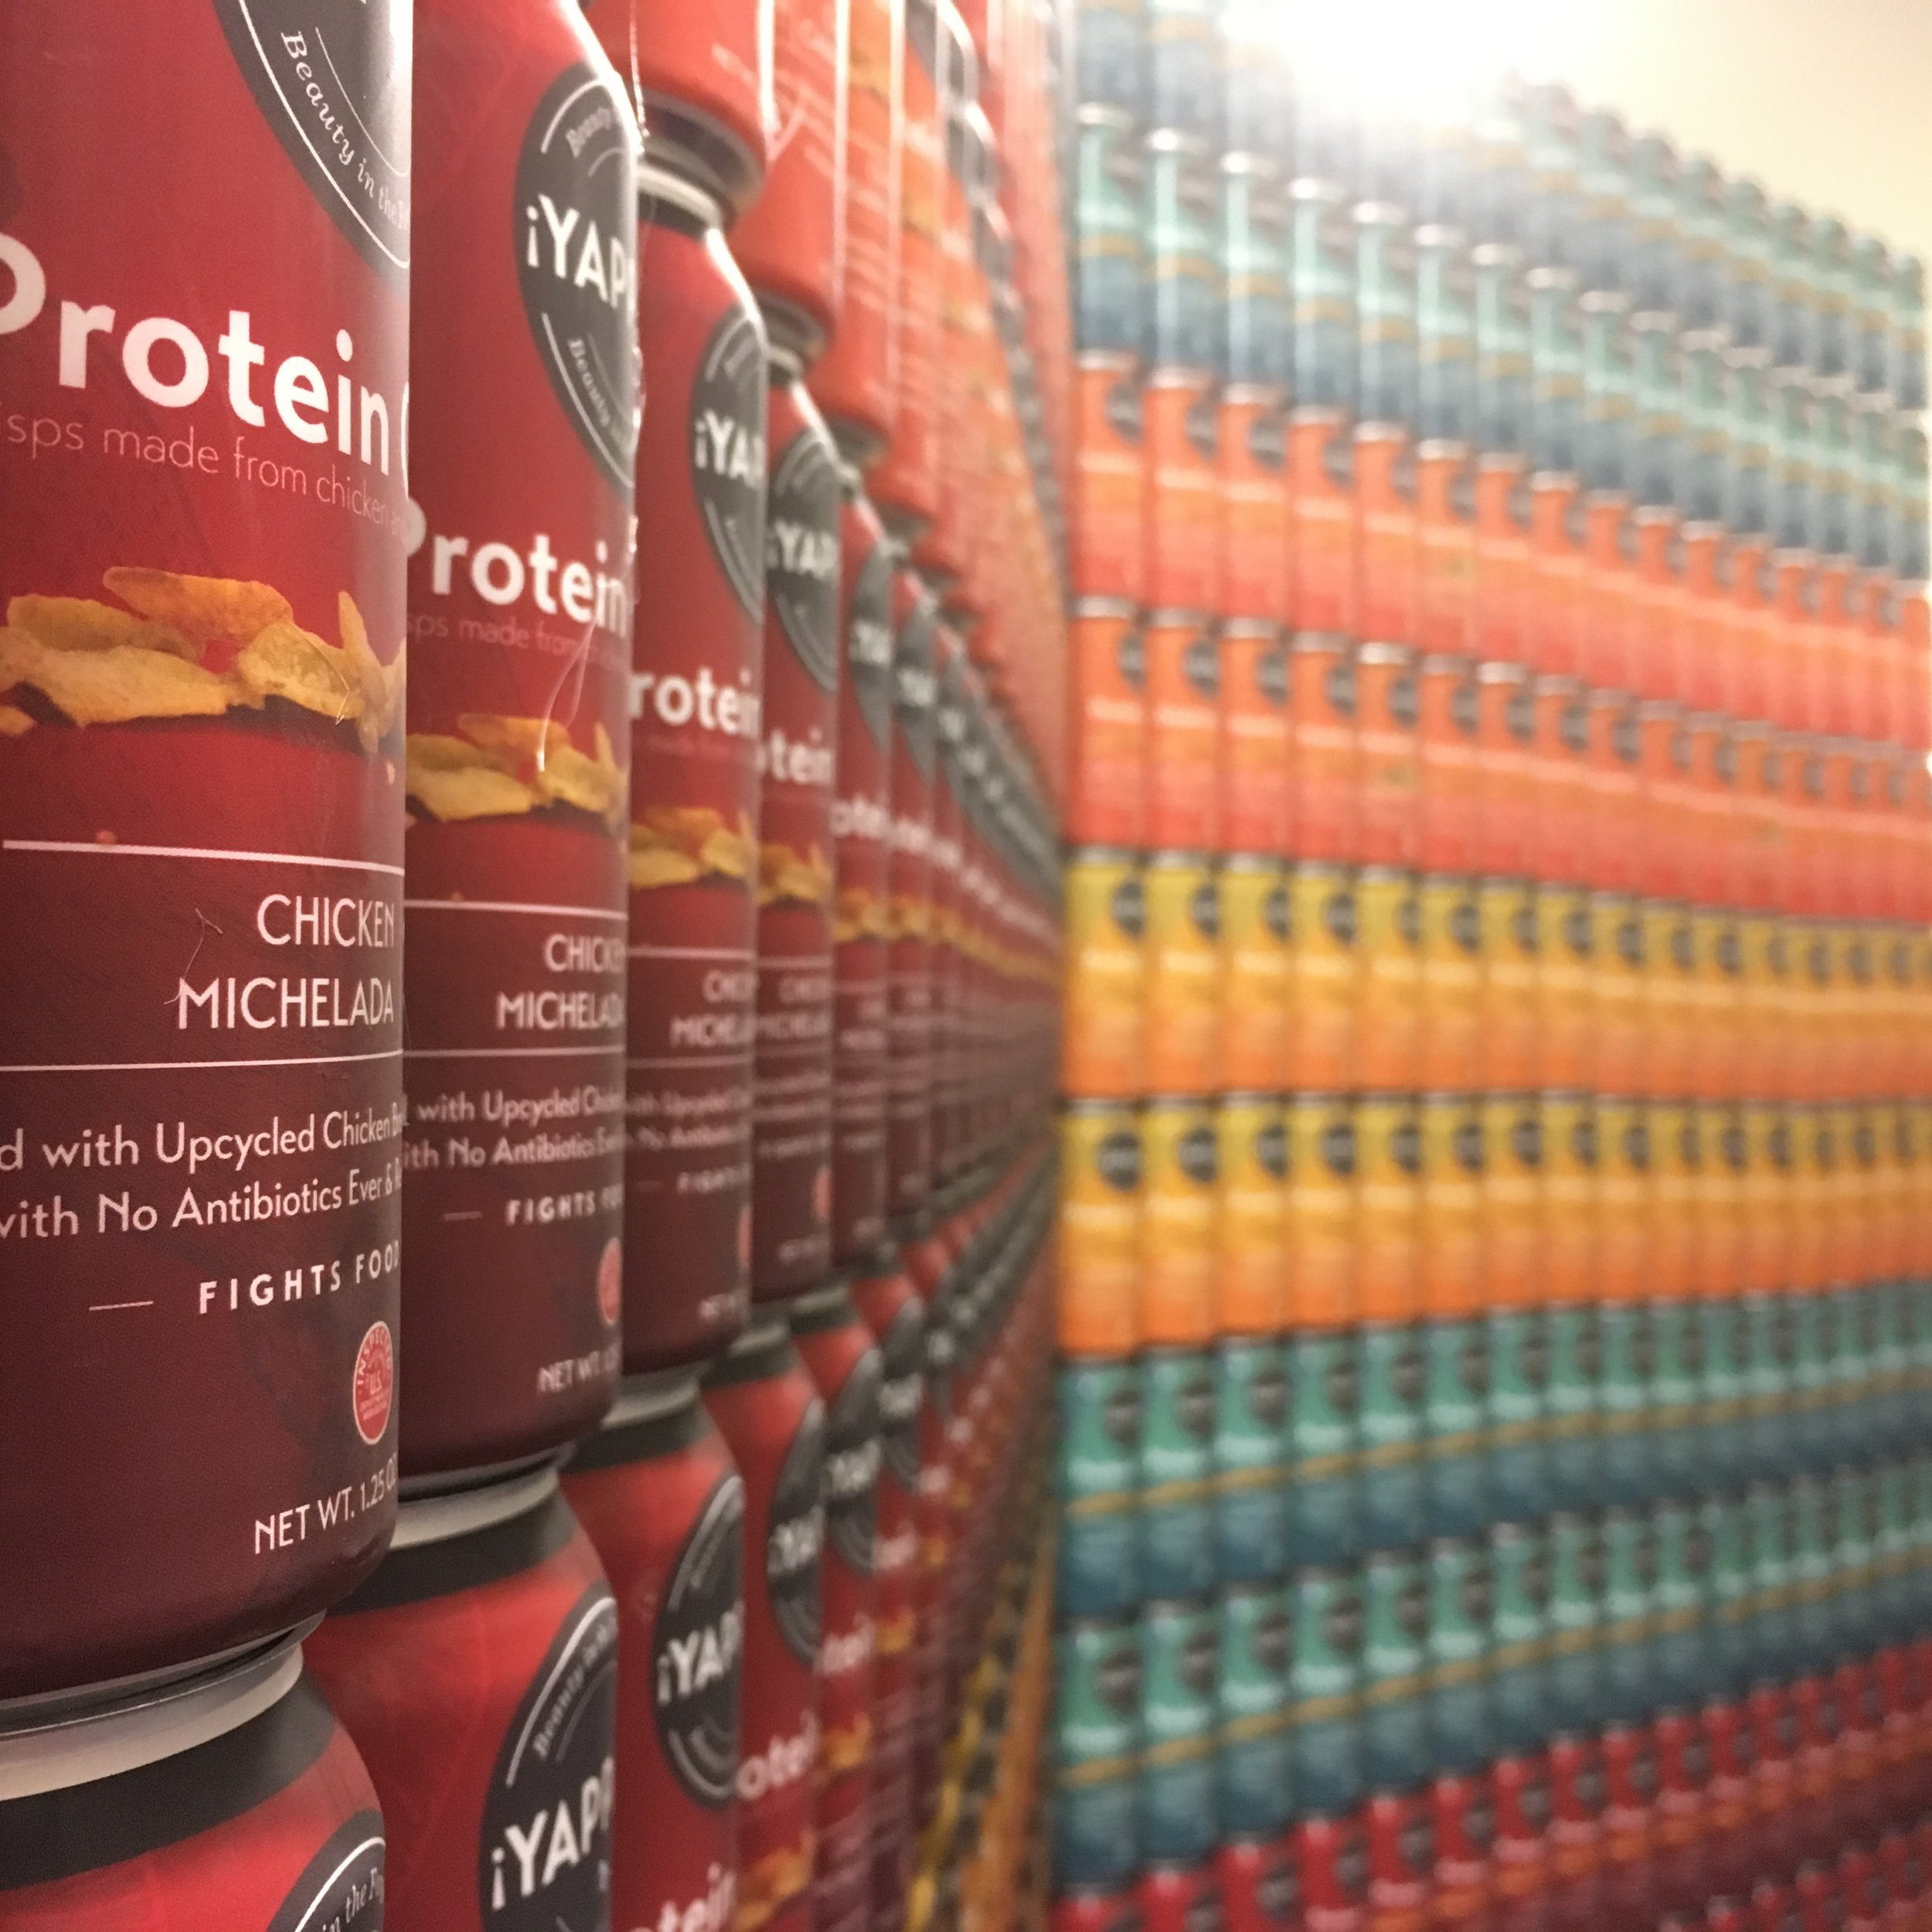 Cans of  ¡Yappah!  ready to roll out, the result of our partnership with the in-house innovation team of a major protein company.